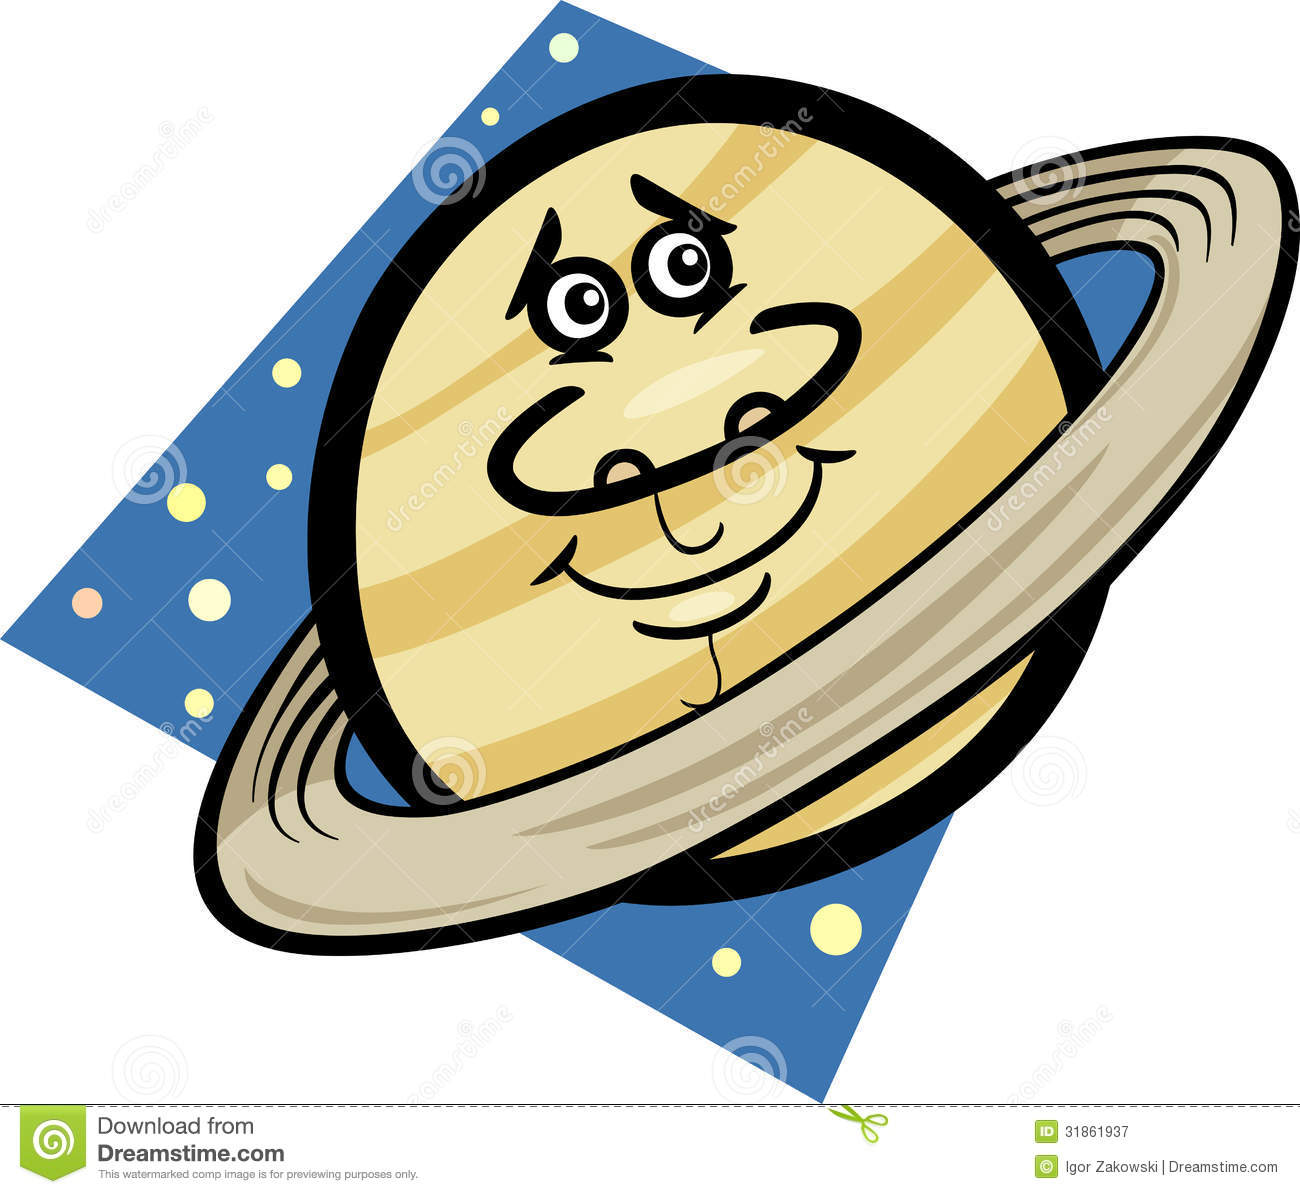 Free Stock Photography  Funny Saturn Planet Cartoon Illustration